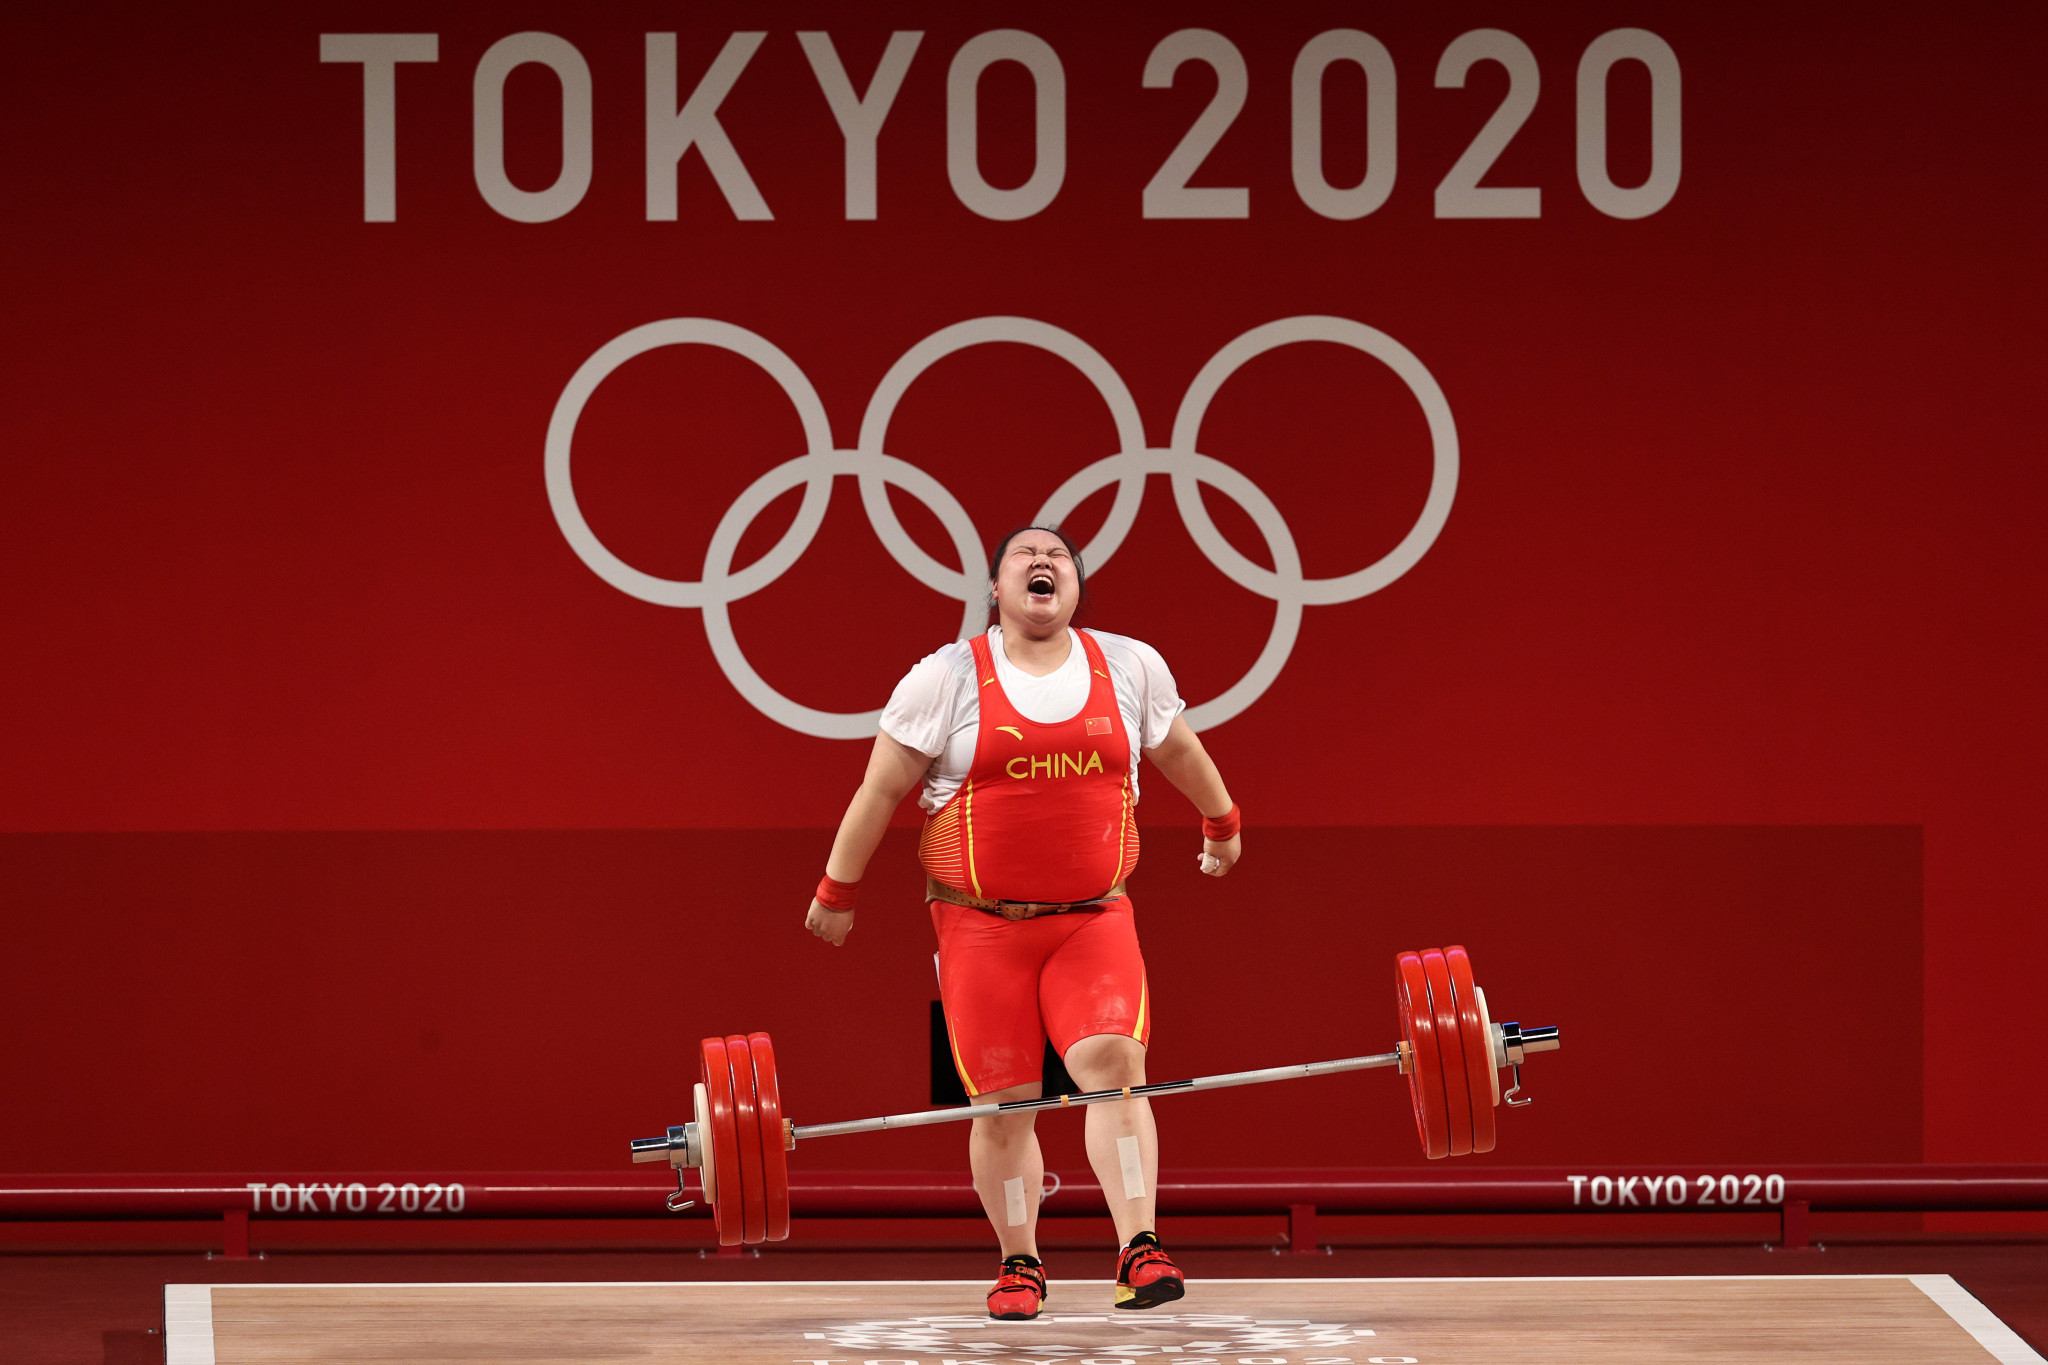 Unstoppable weightlifter Li wins again as Britain's Campbell ends 37-year medal wait